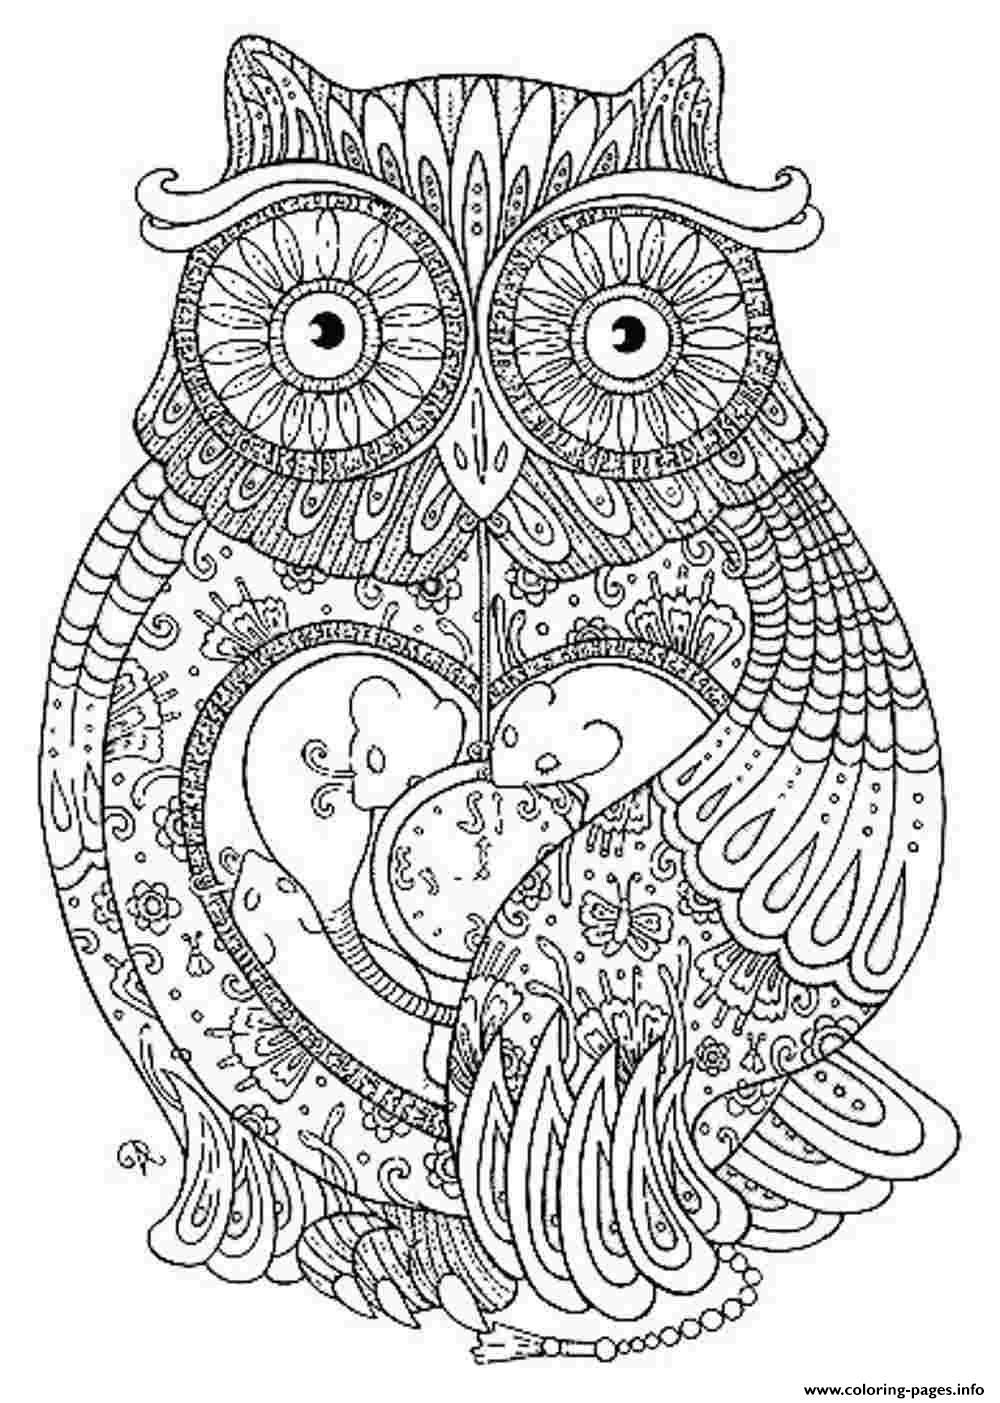 Animal Coloring Pages For Adults  Animal Coloring Pages For Adults Coloring Pages Printable